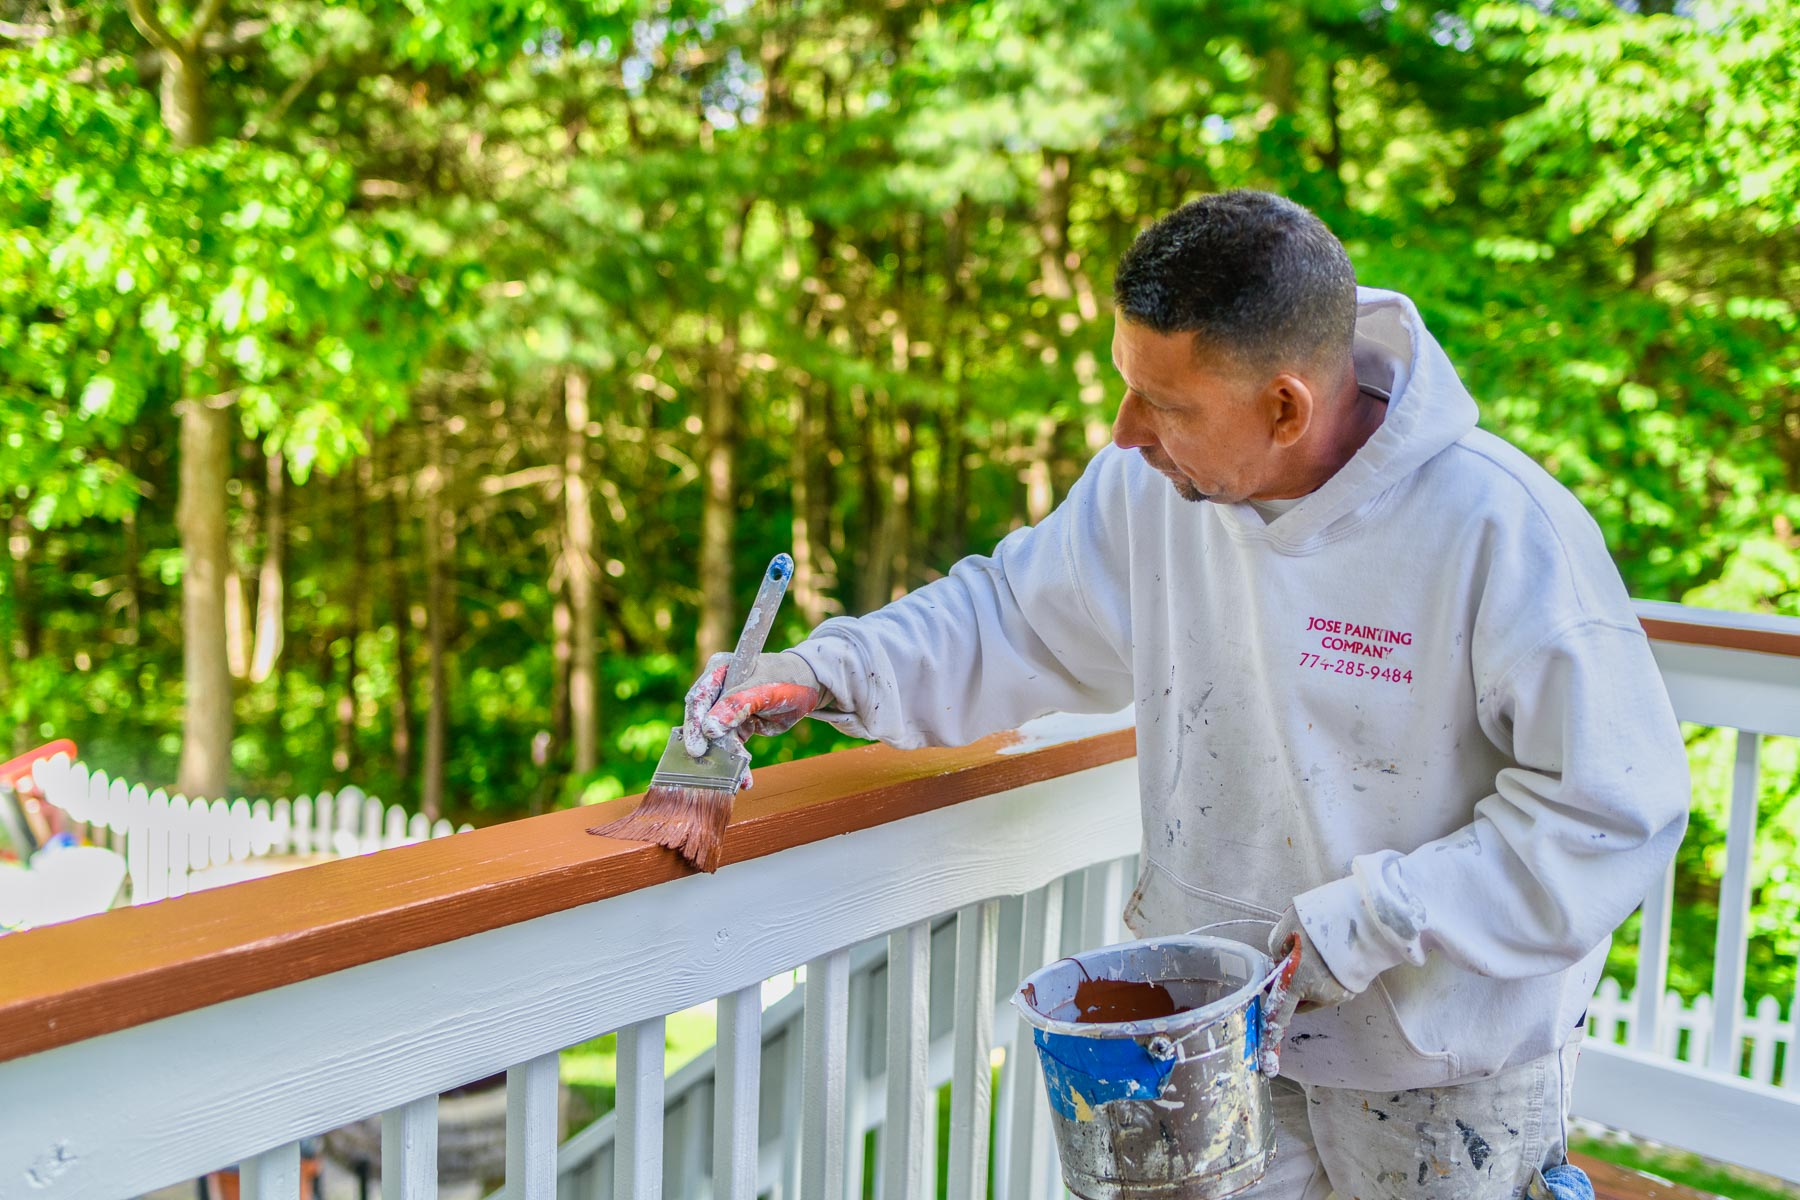 Jose Painting Company - Deck Painting